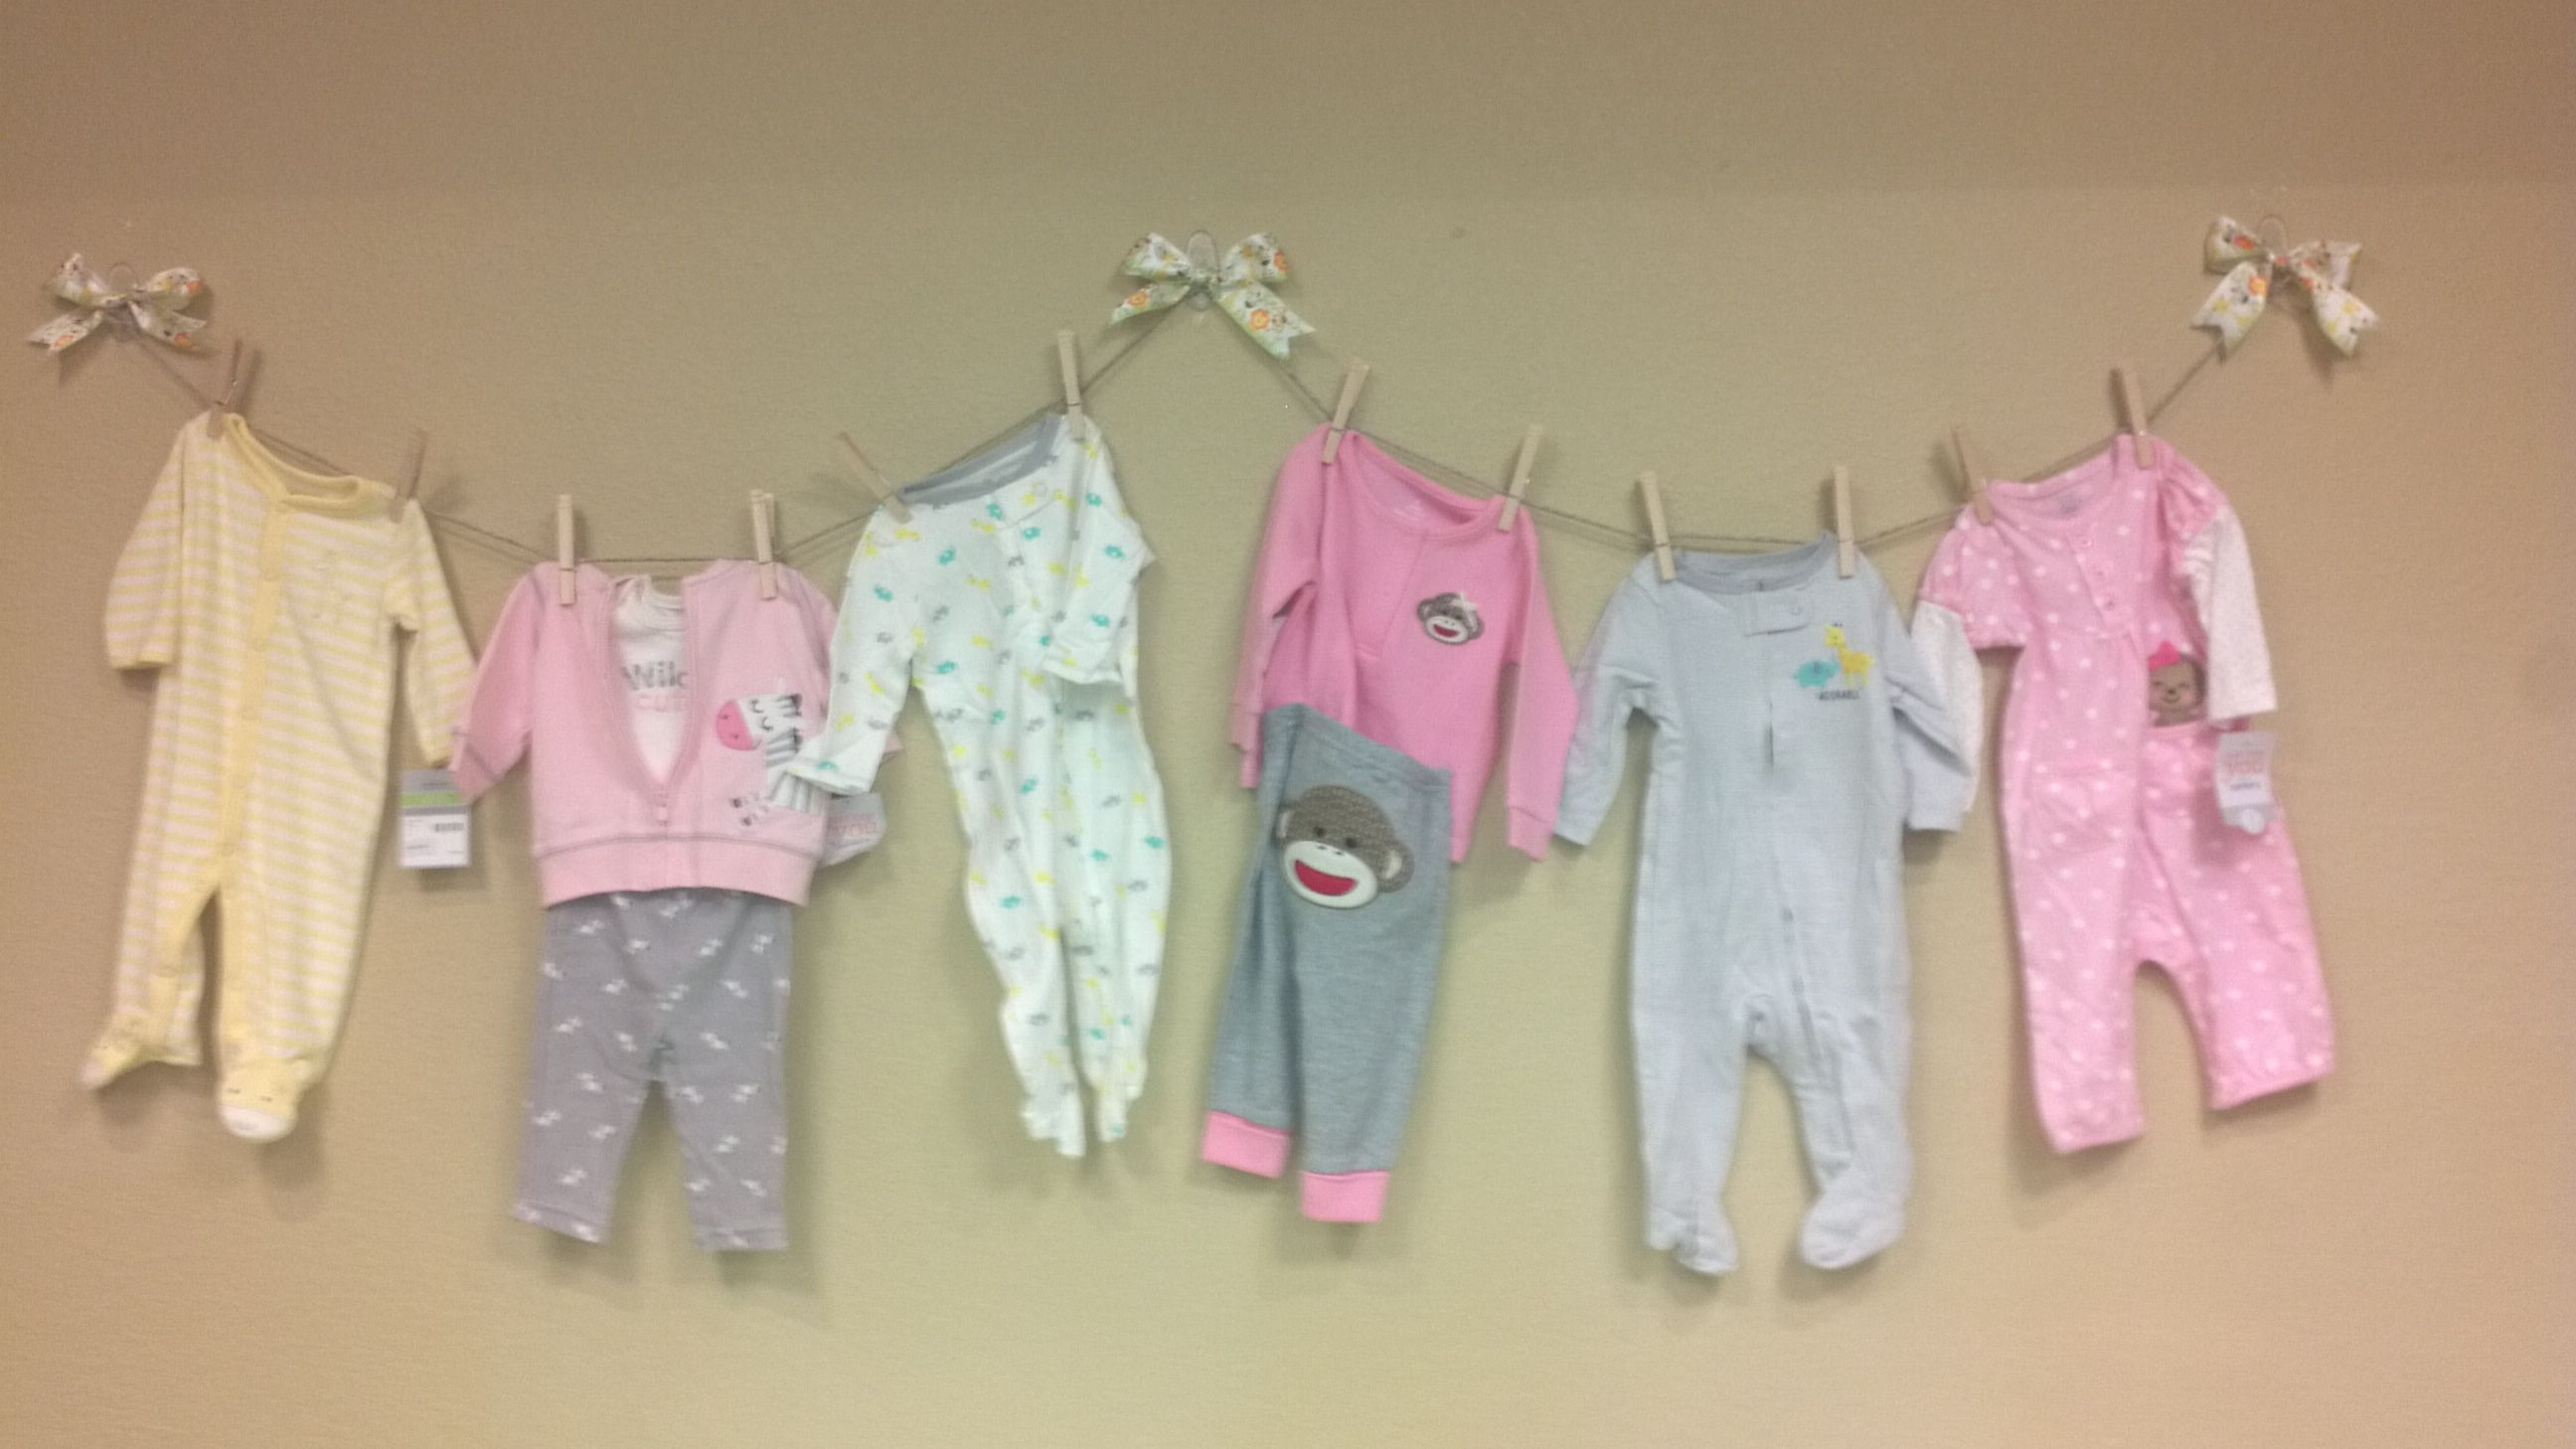 Clothesline Baby Shower Decorations - Baby Shower Decoration Wall